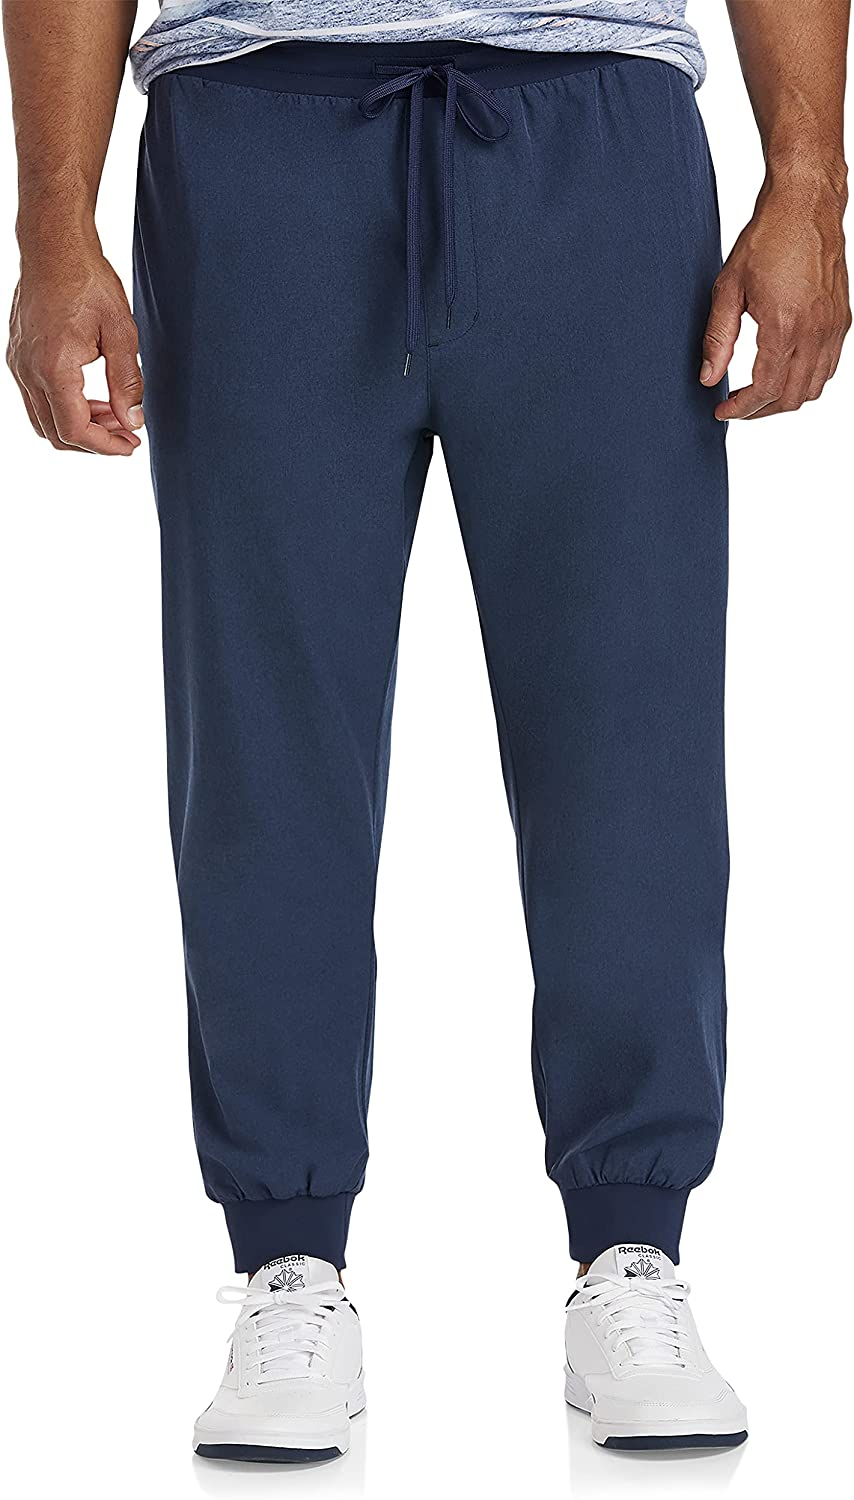 Society of One by DXL Big and Tall Hybrid Joggers